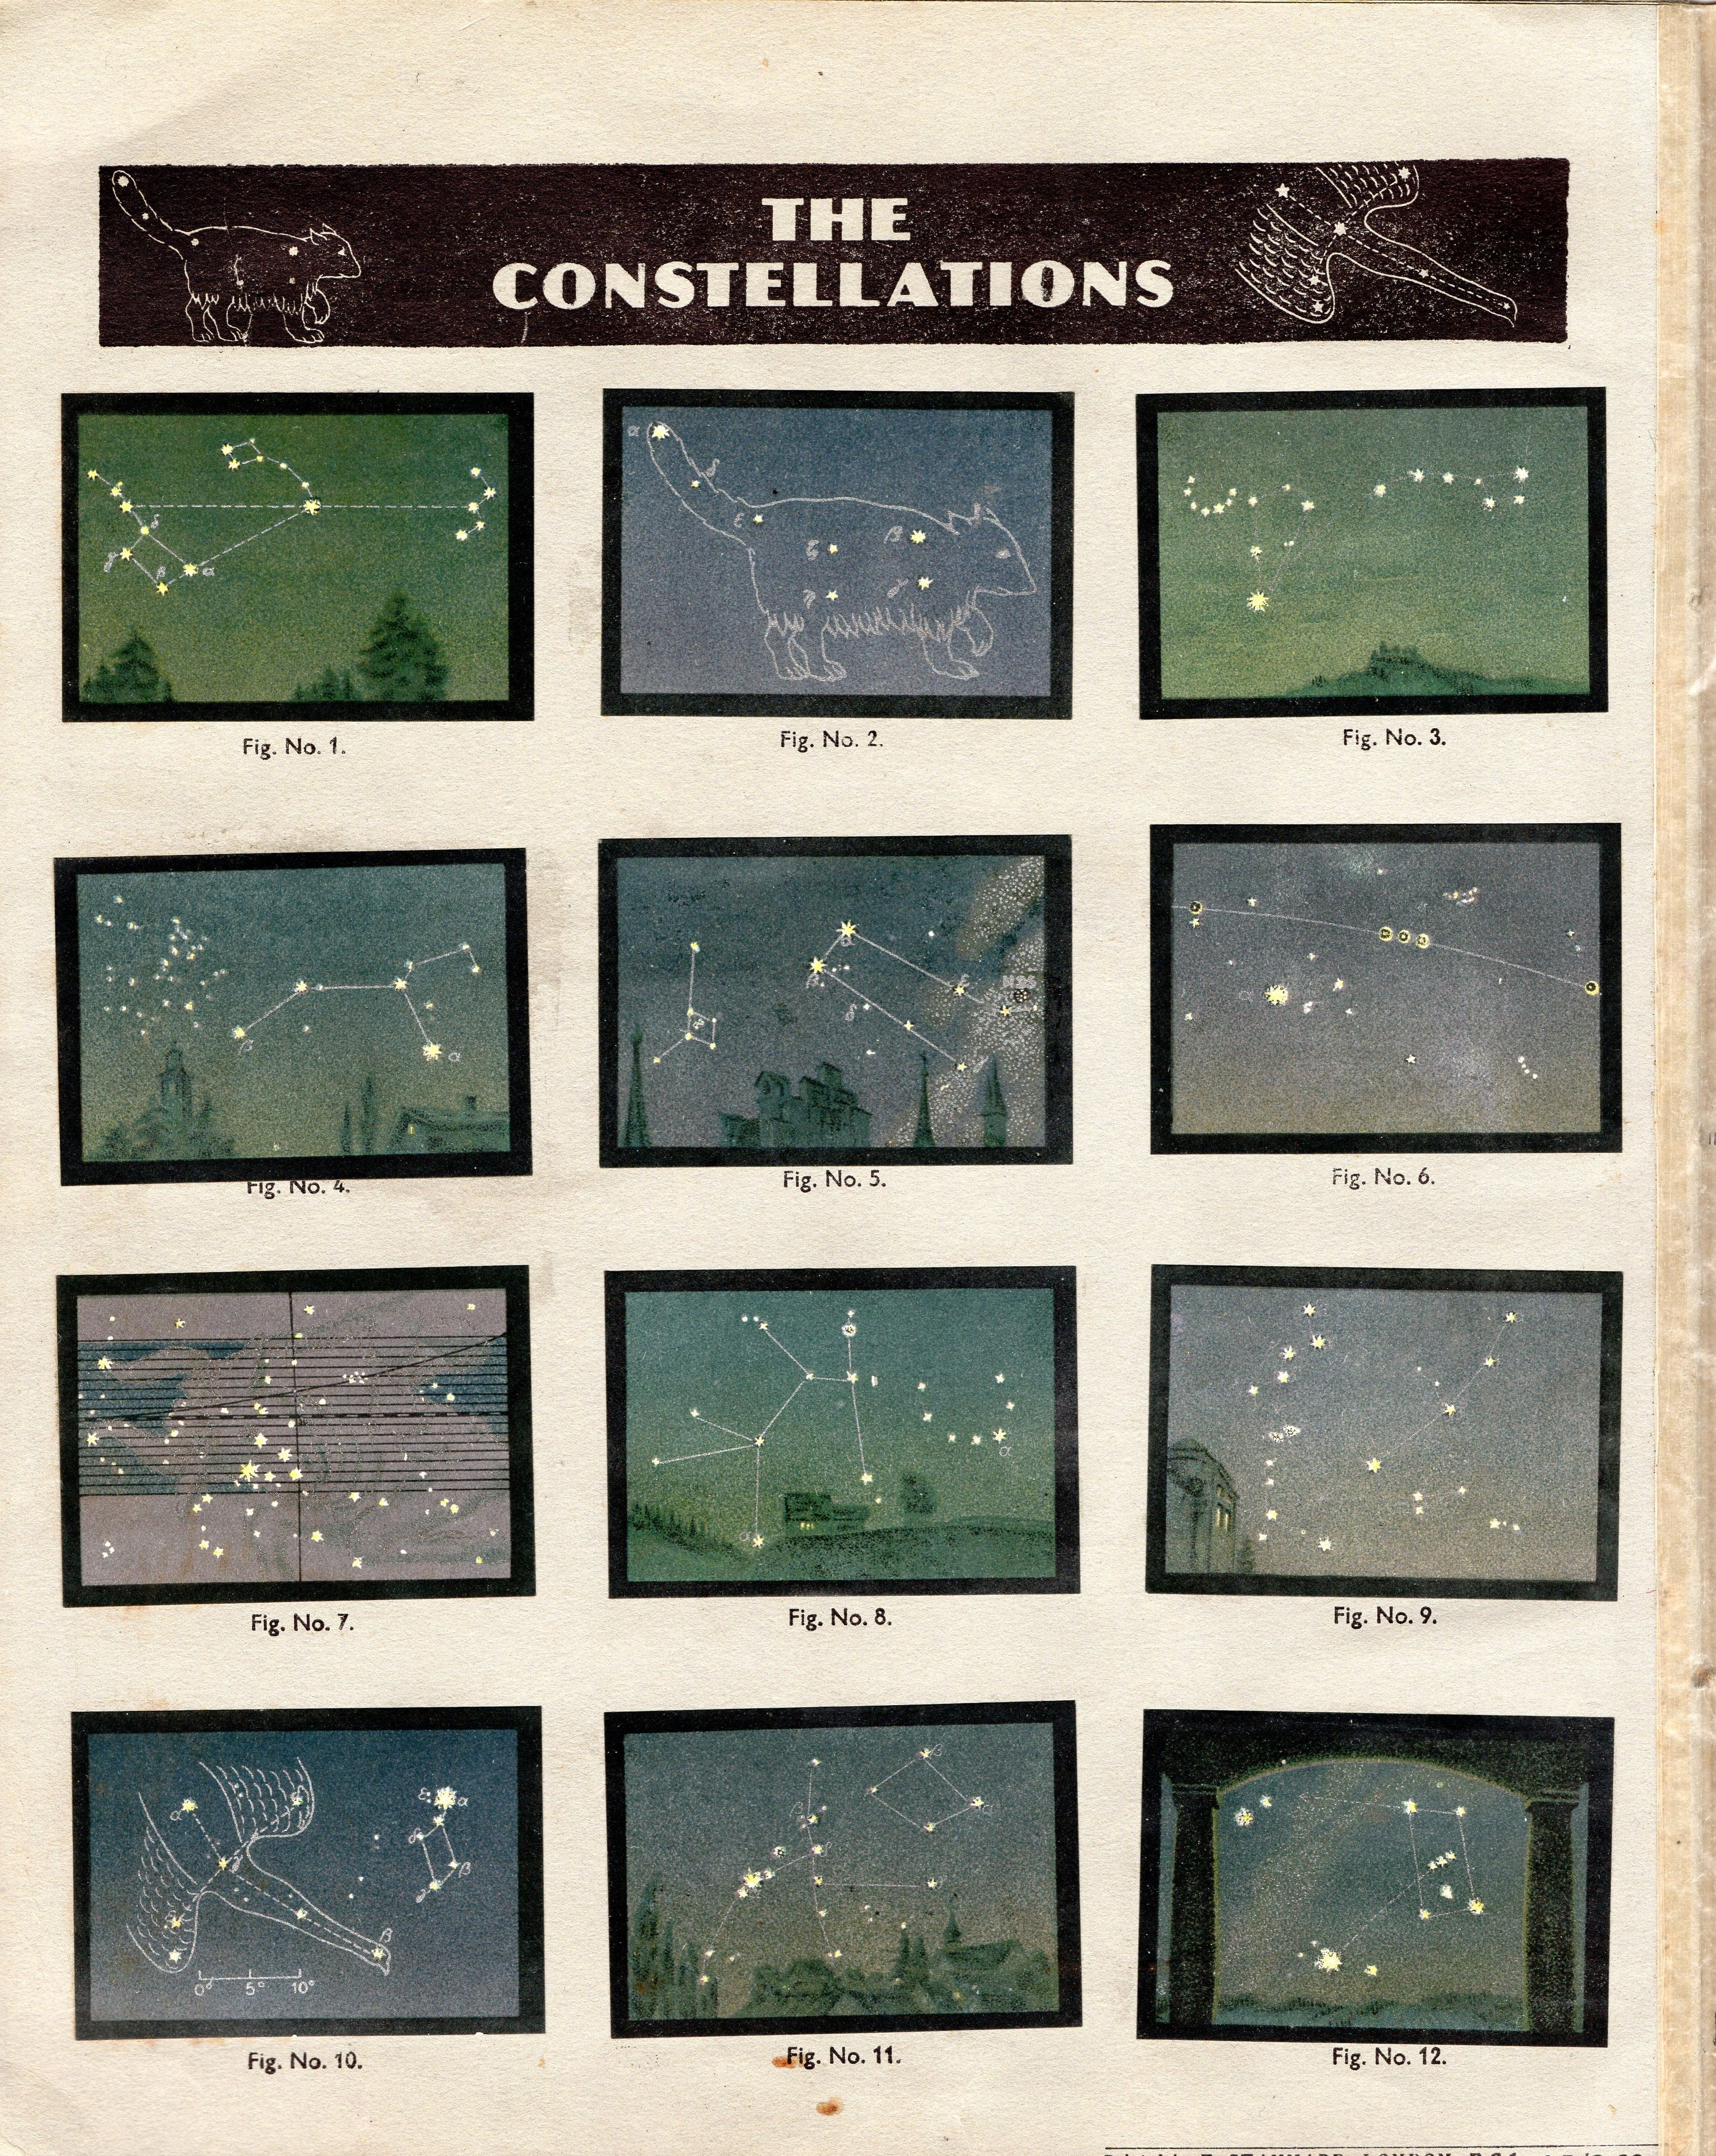 NESTLE': Wonders of the World (1932 - The Constellations)